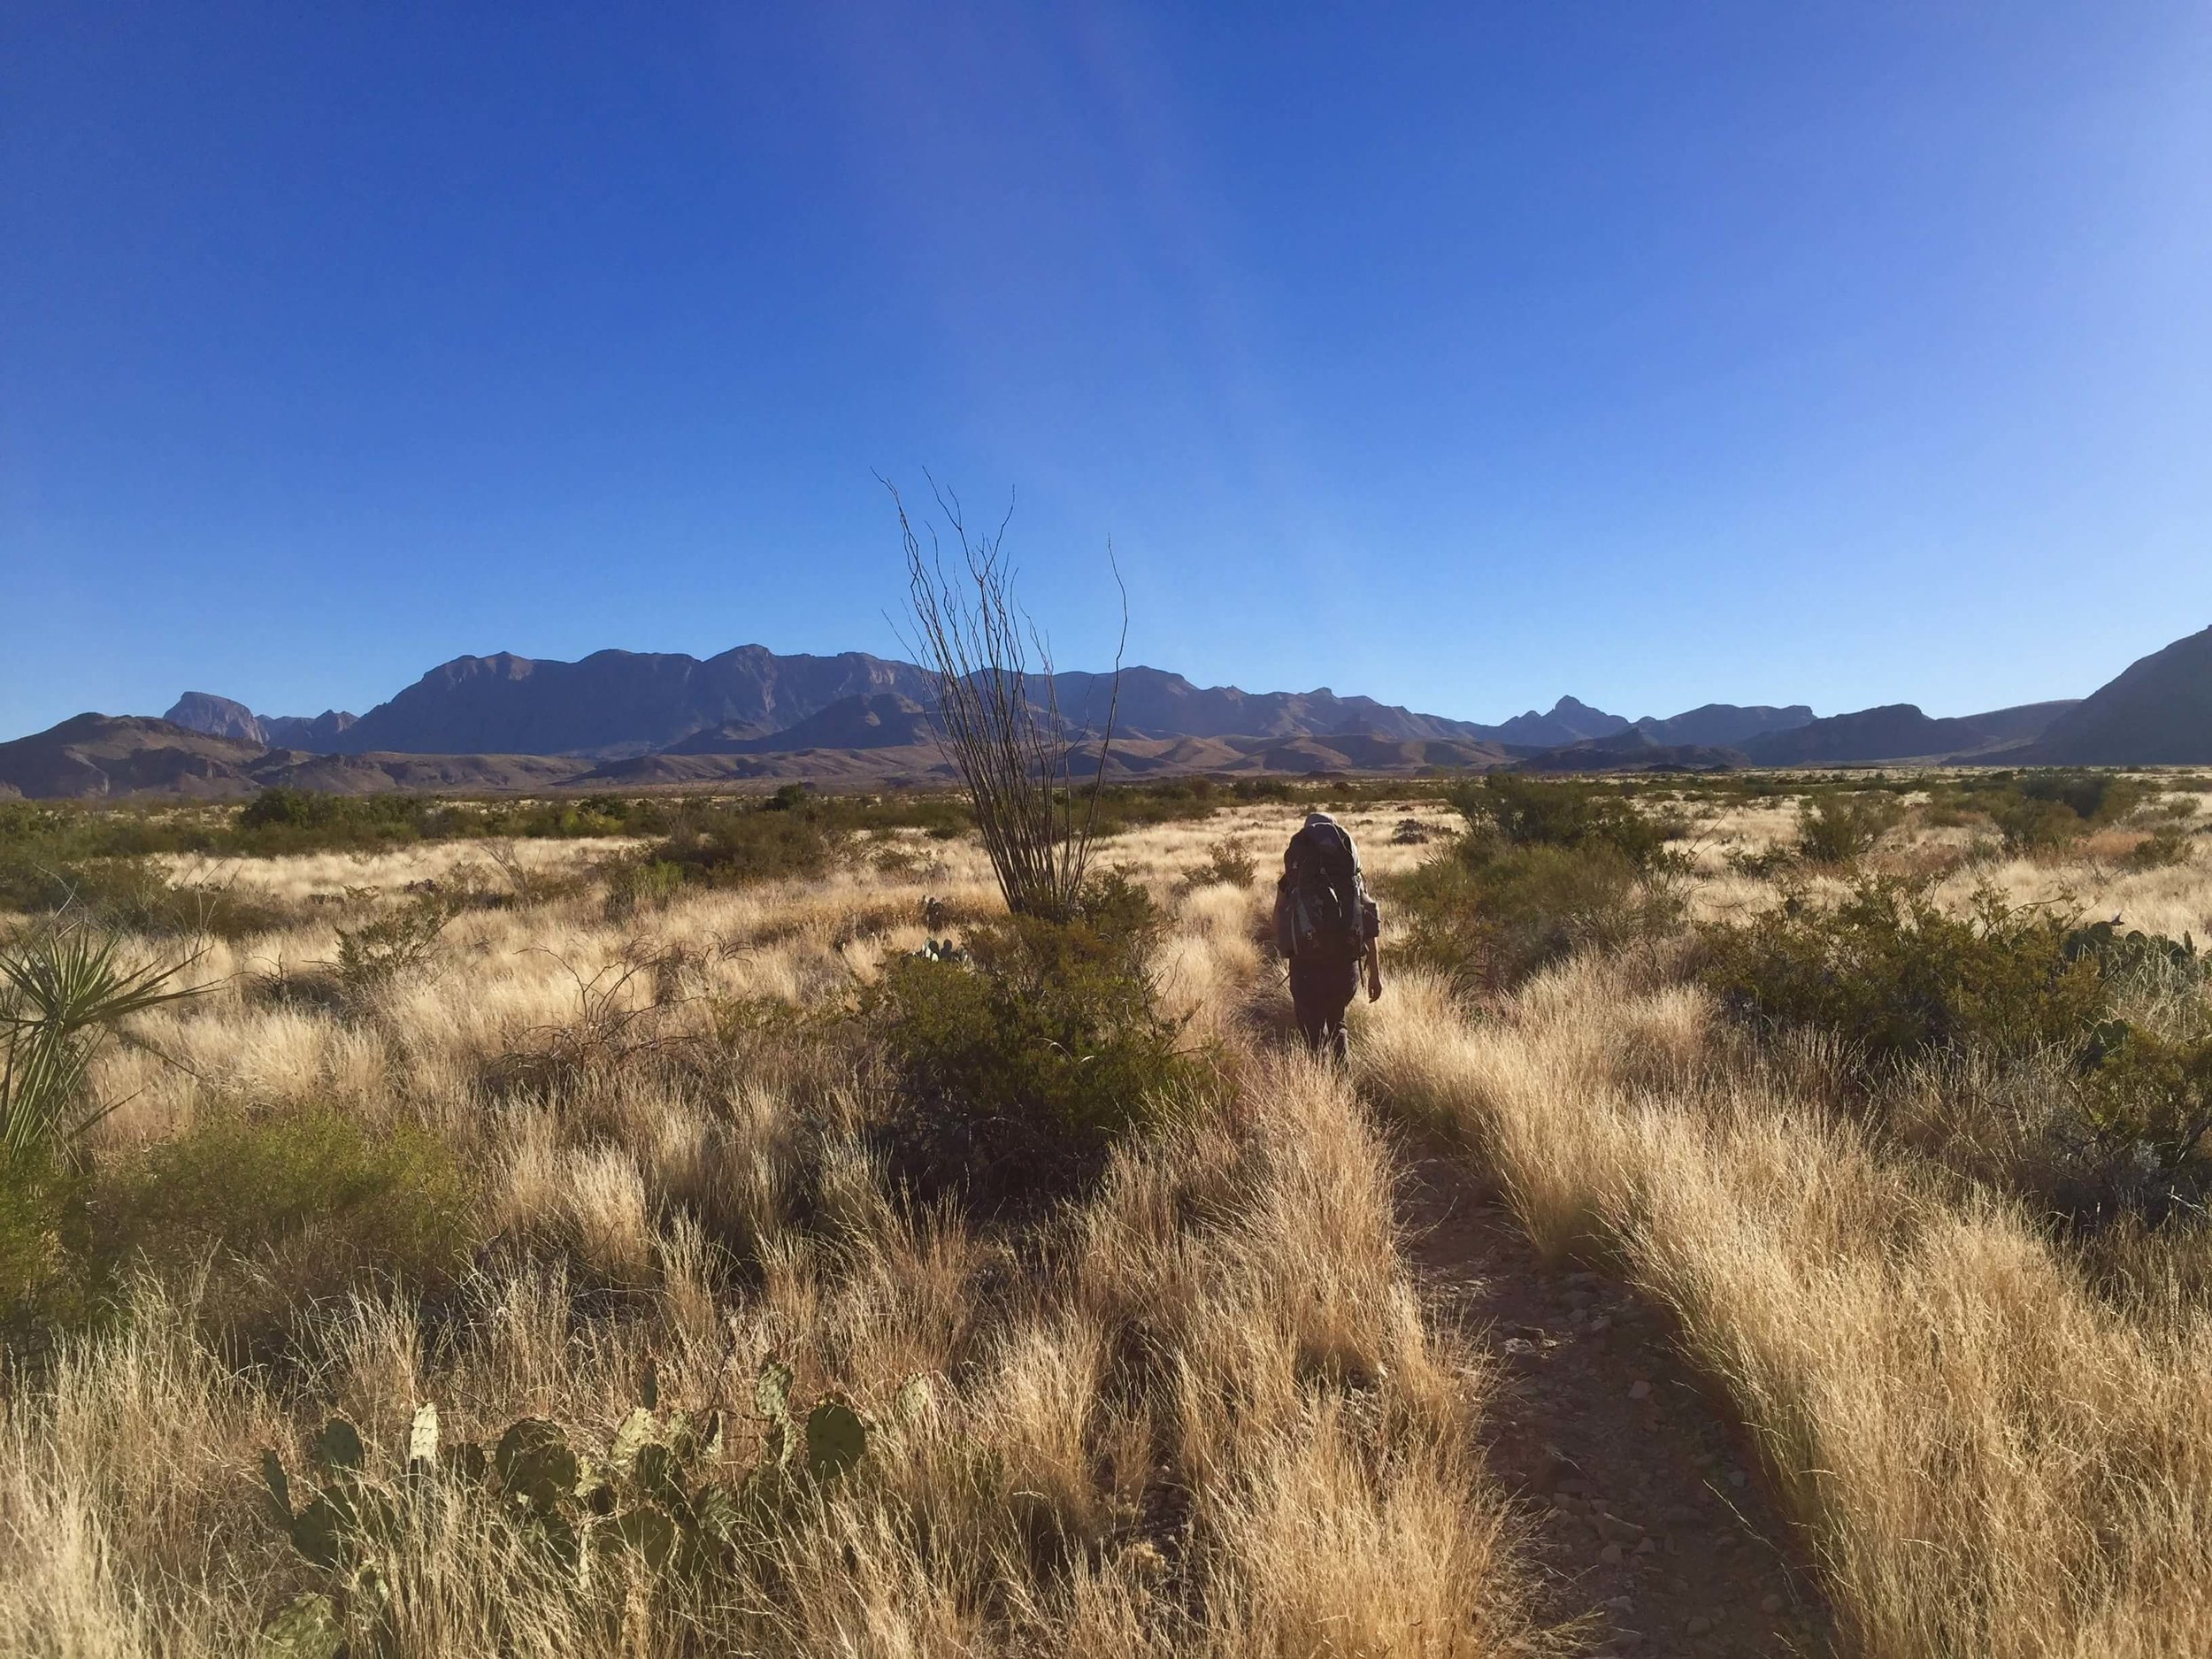 Backpacking in the desert of Big Bend.